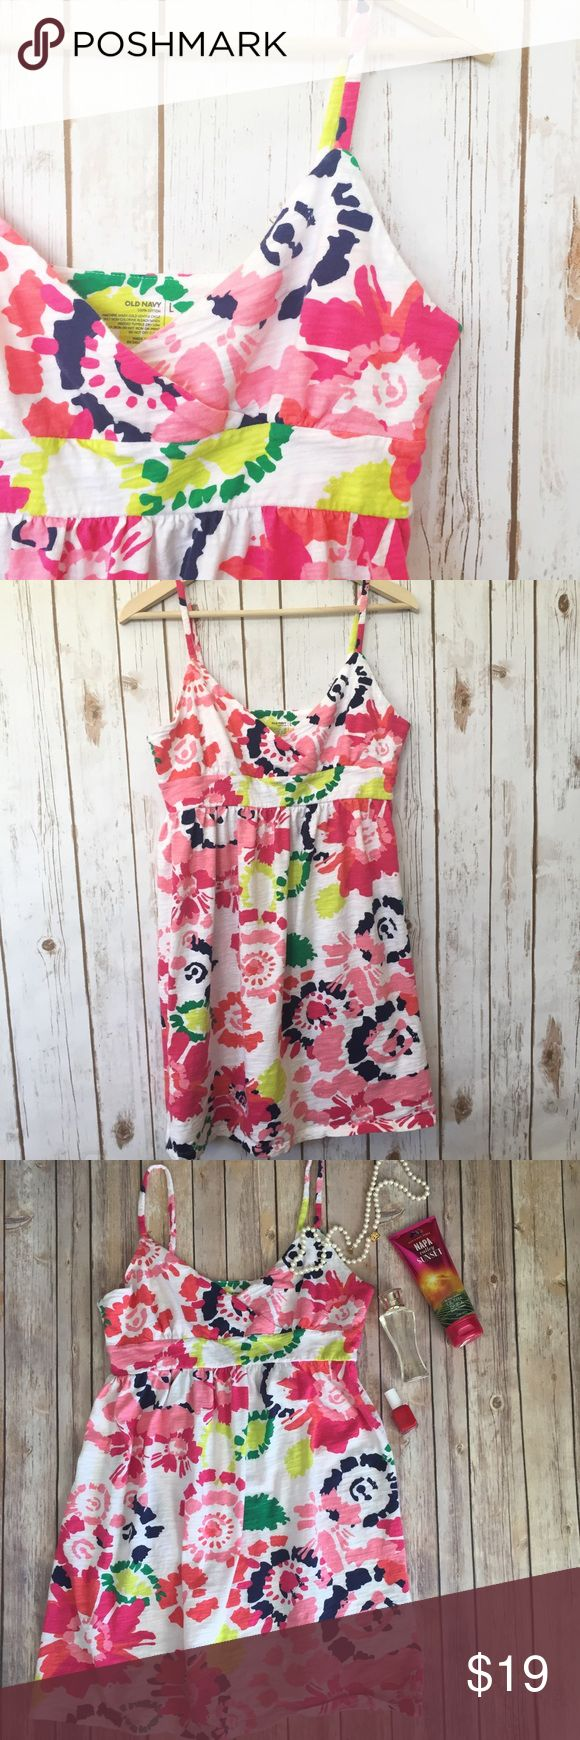 "Old Navy floral spaghetti strap sundress This is a great slip on dress for summer - looks super cute with sandals! Really comfy, too!  Gently used, but still in excellent condition. Measurements laying flat: bust 18"", length 32"", waist 15.5"" (straps are adjustable!) {RS2.B.170317} Old Navy Dresses"